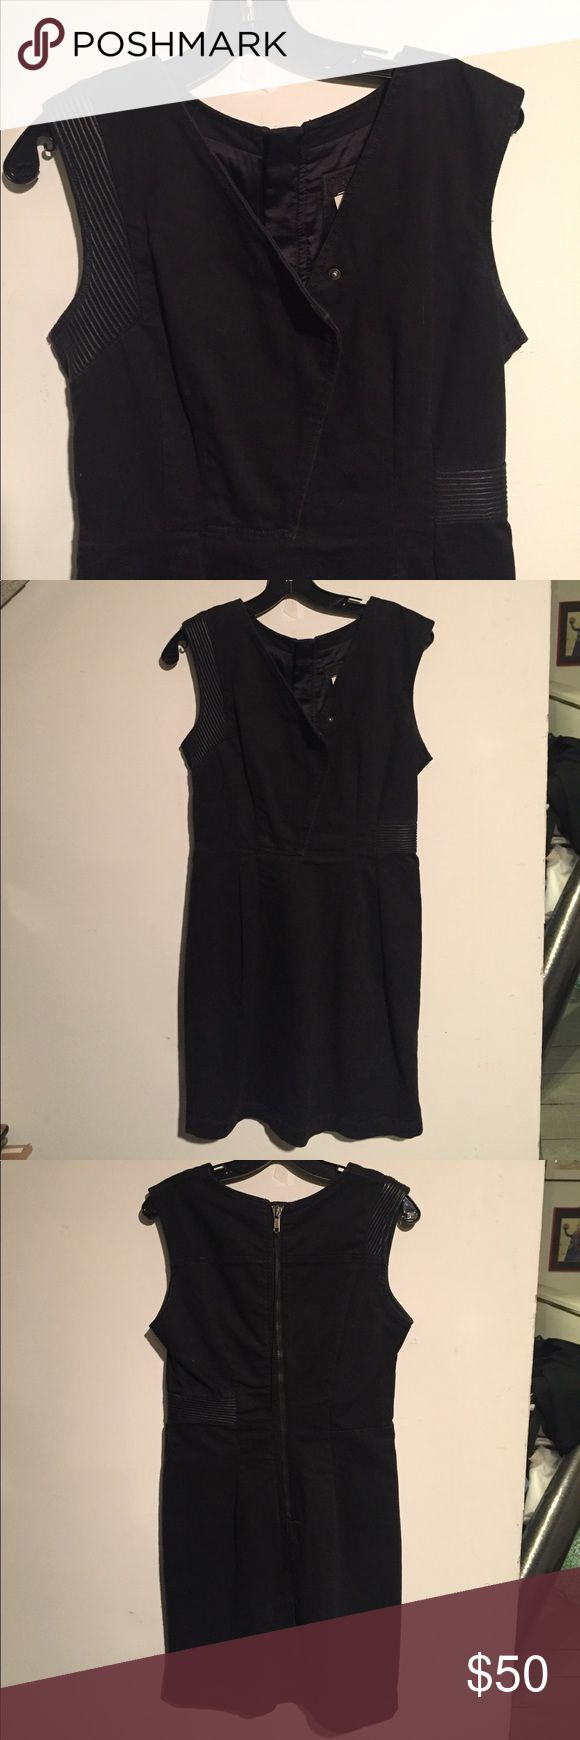 Diesel black denim and leather trim dress Edgy asymmetrical dress with ribbed leather trim. Totally cool! No size but fits size 6. Diesel Dresses